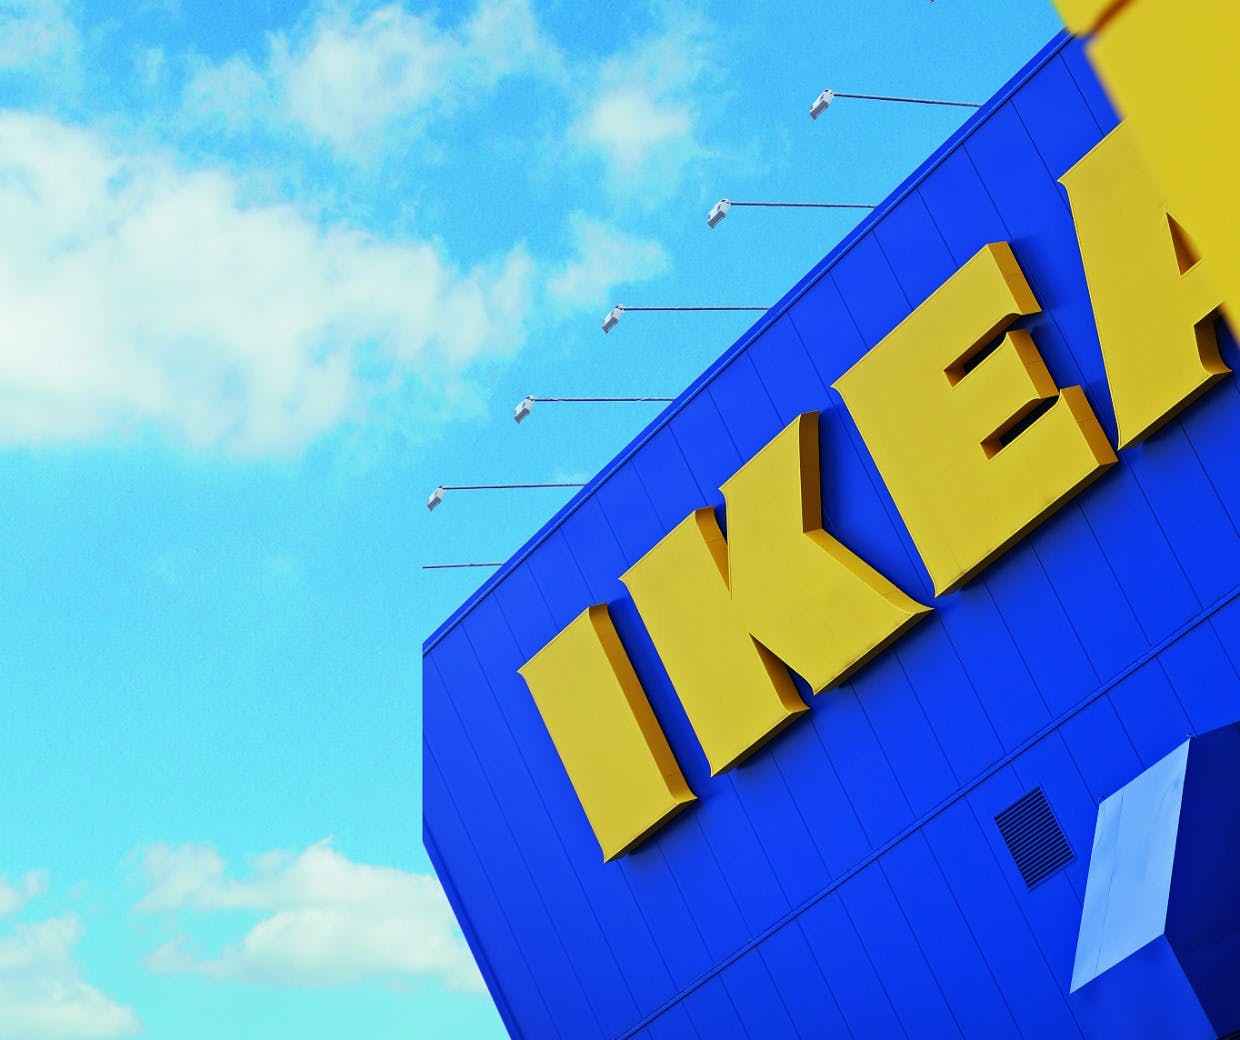 Ikea We Collaborate With Our Ad Agencies As If They Were Furniture